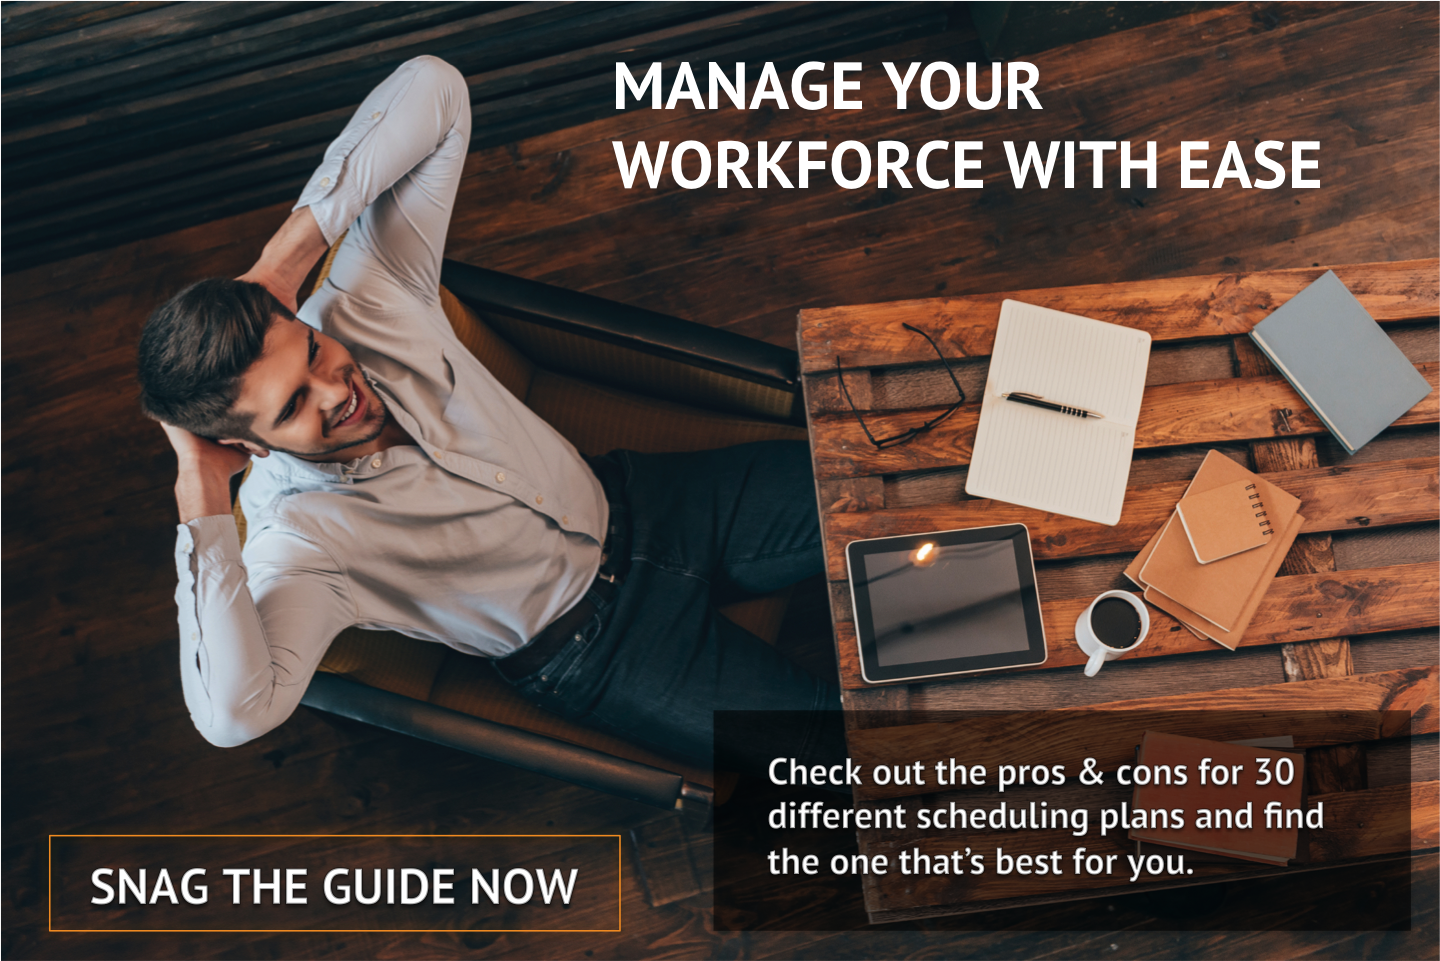 Pros and cons of 30 scheduling plans designed to maximize the productivity of your workforce.